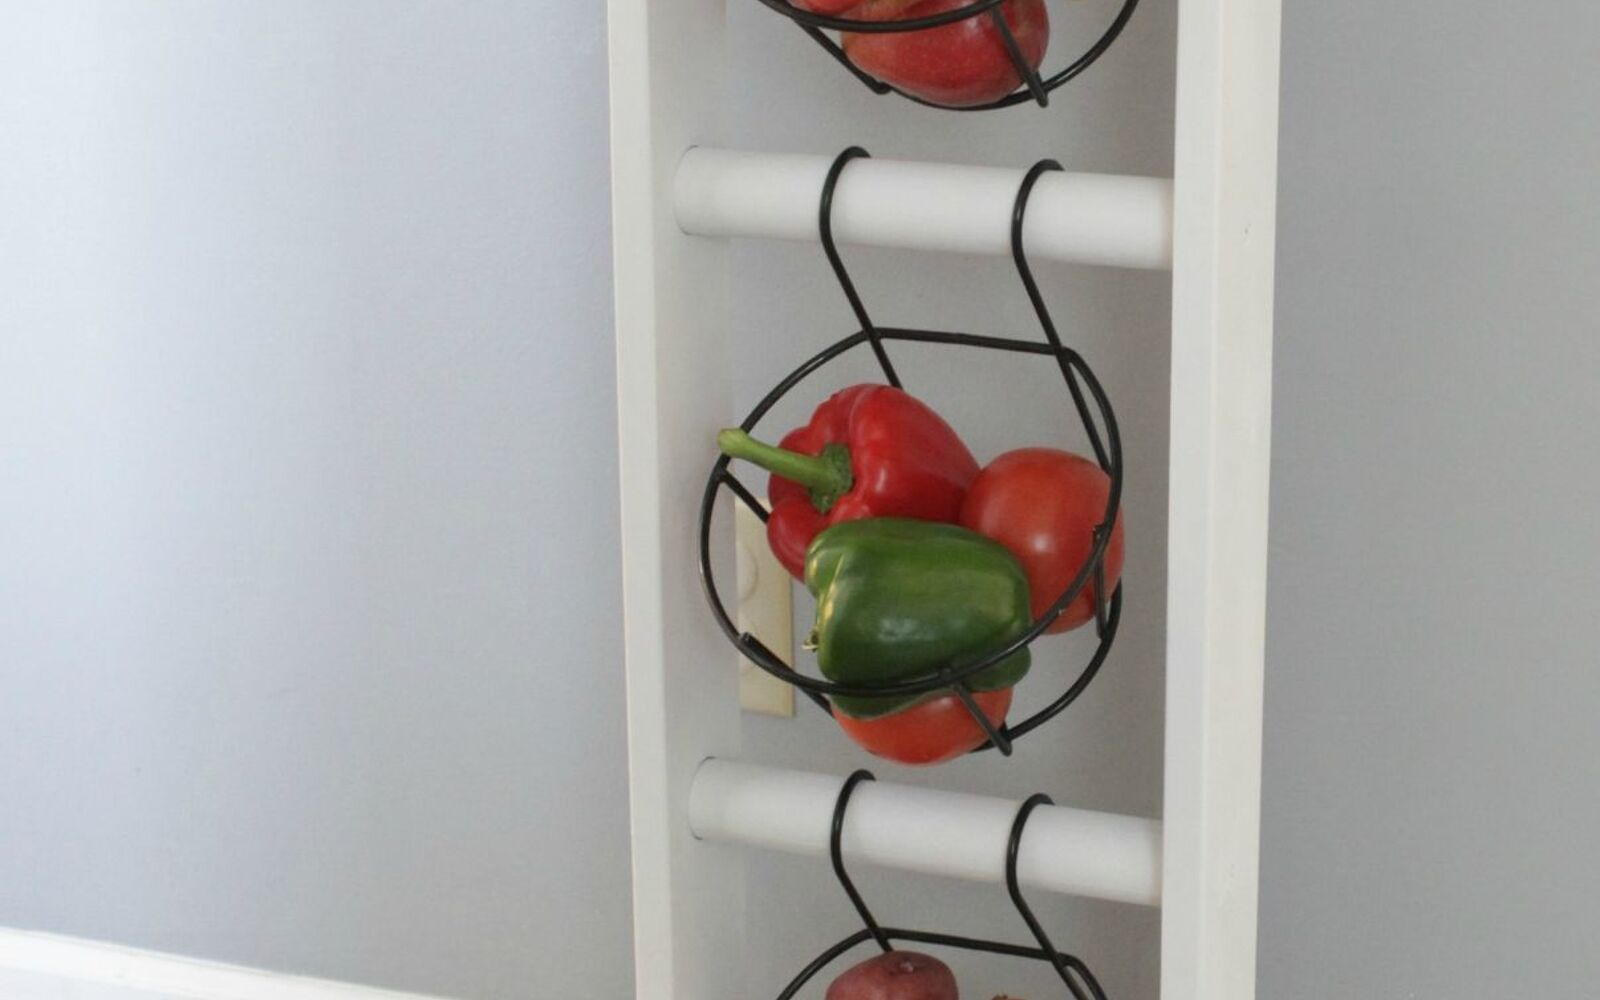 s 30 fun ways to keep your home organized, Create A Produce Stand For Counter Space